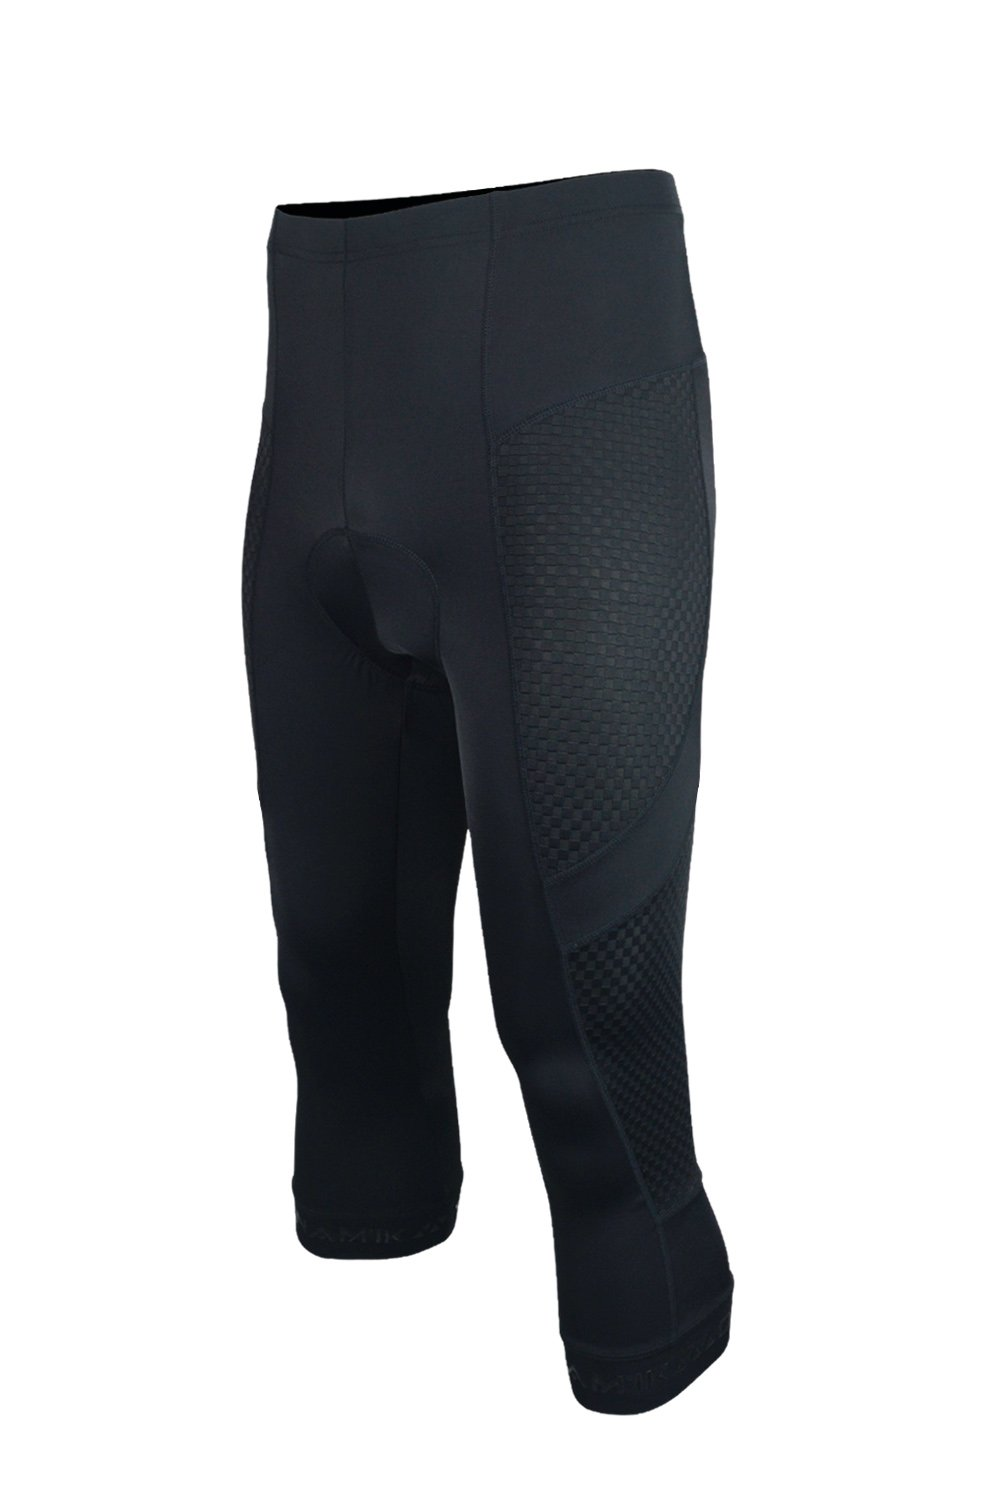 Dinamik Evo Pro Men's Bicycle Knickers- Extra Padded Cycling 3/4 Capri Compression Tights (Black, X-Small)